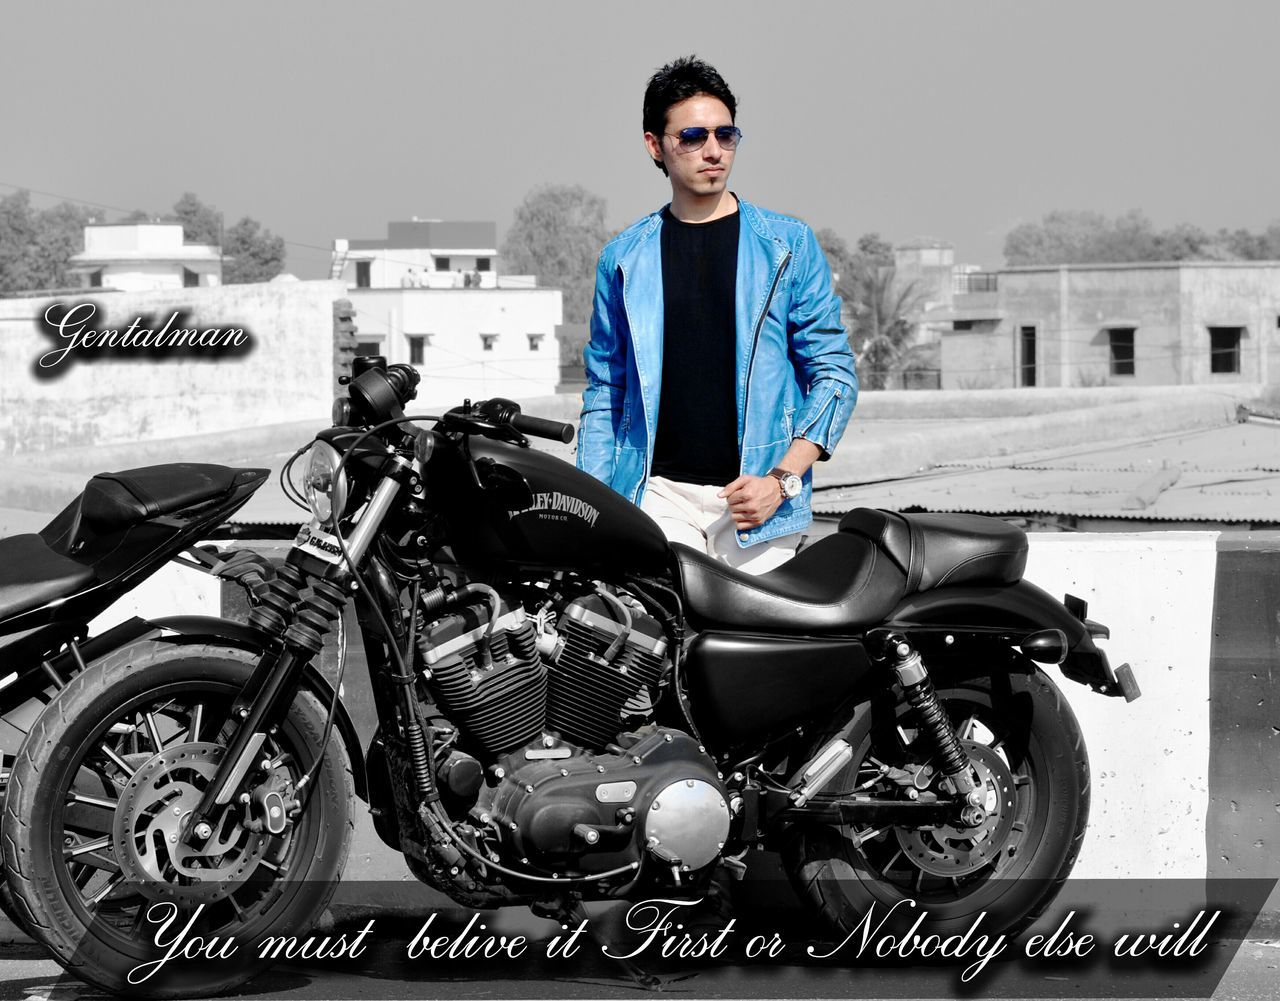 looking at camera, motorcycle, real people, one person, portrait, front view, young adult, transportation, lifestyles, outdoors, mode of transport, young men, jacket, day, confidence, full length, built structure, smiling, standing, sitting, building exterior, architecture, young women, biker, people